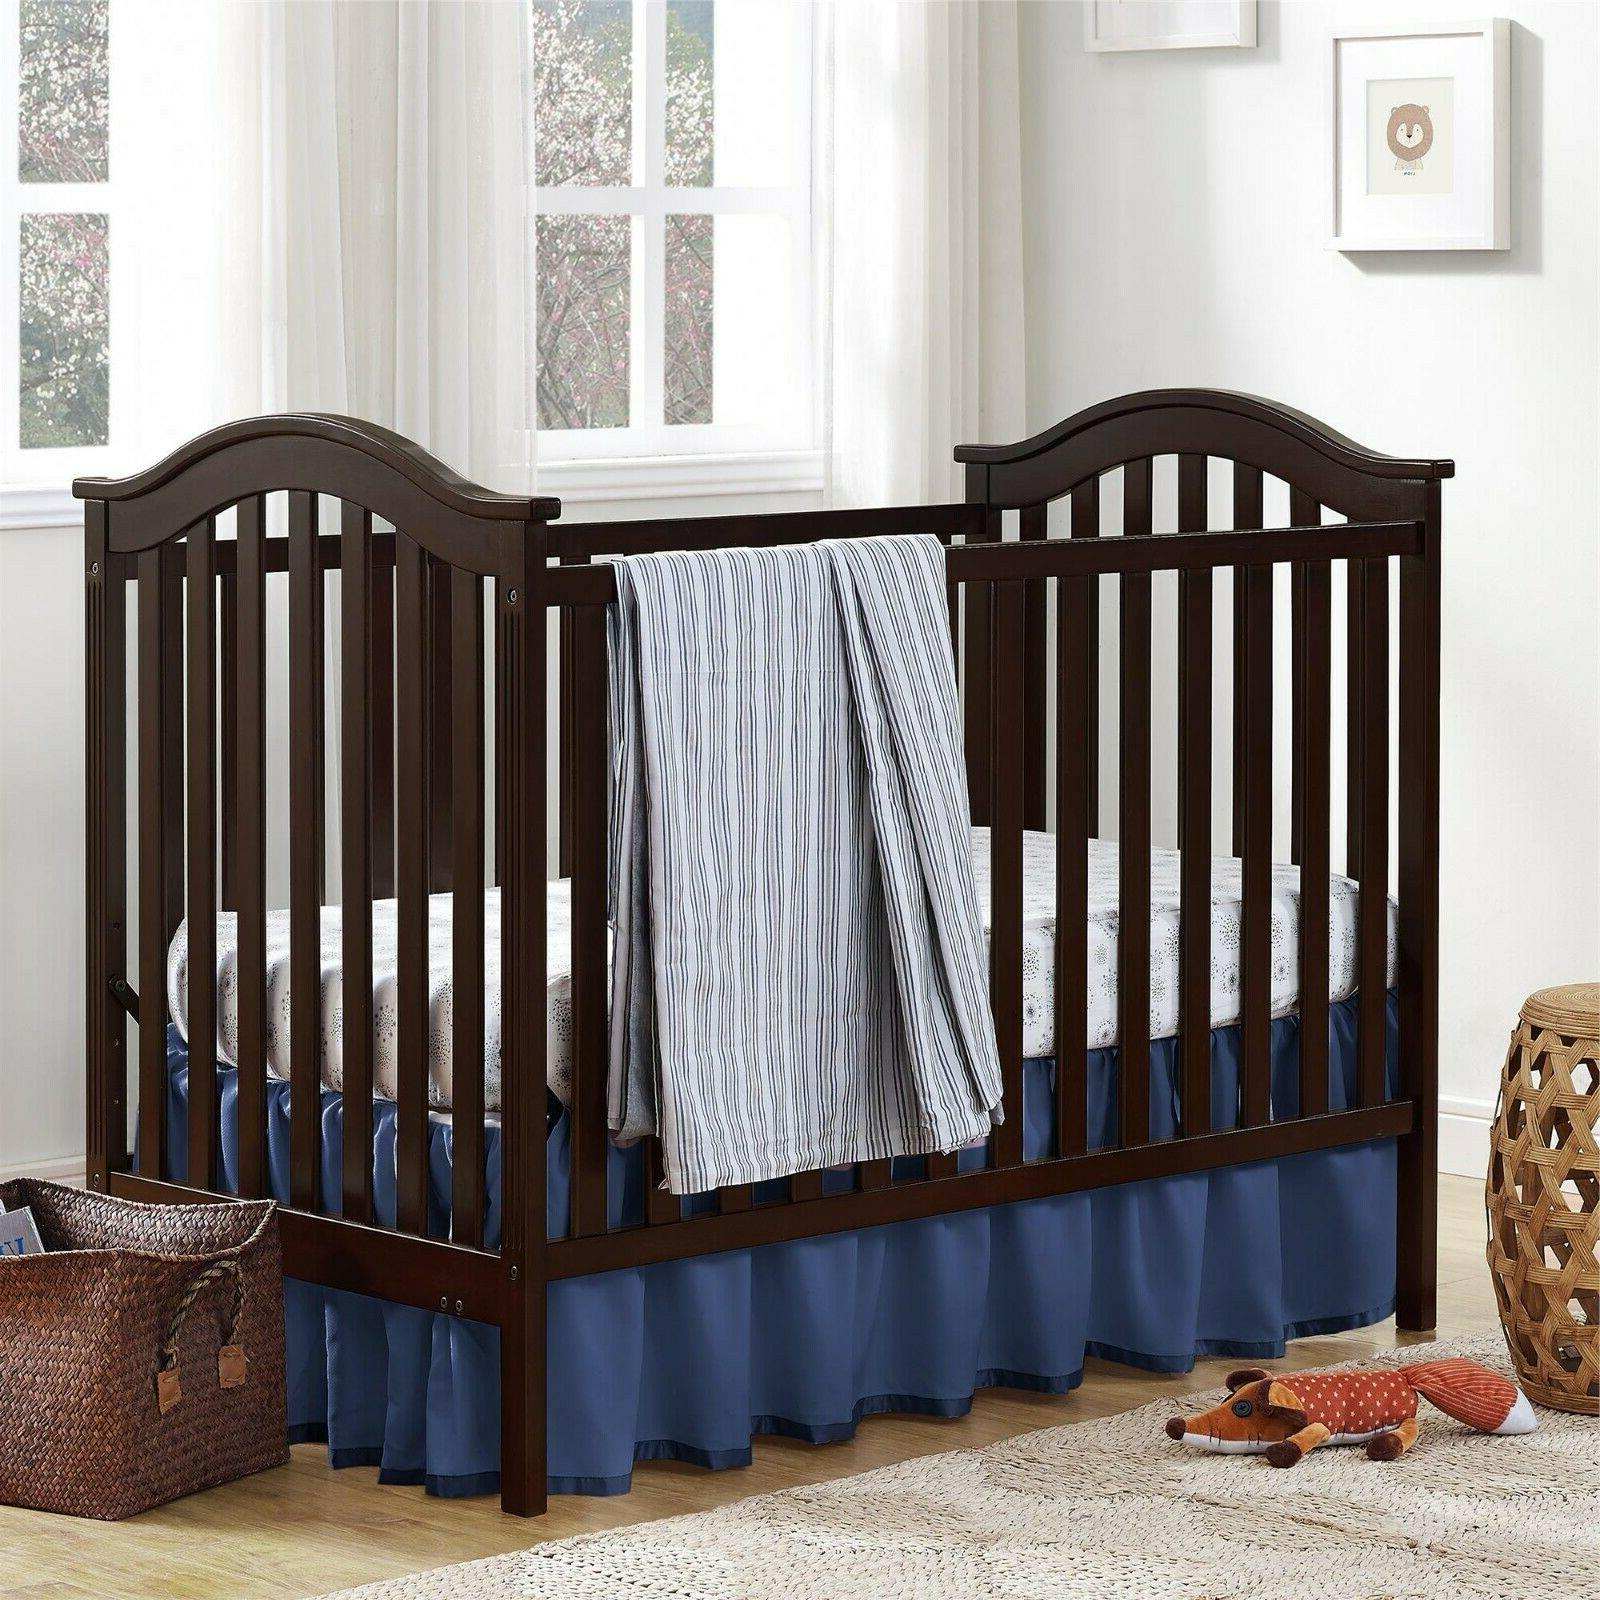 Adelyn 2-in-1 Sturdy Wood Unisex Convertible Modern Baby Tod